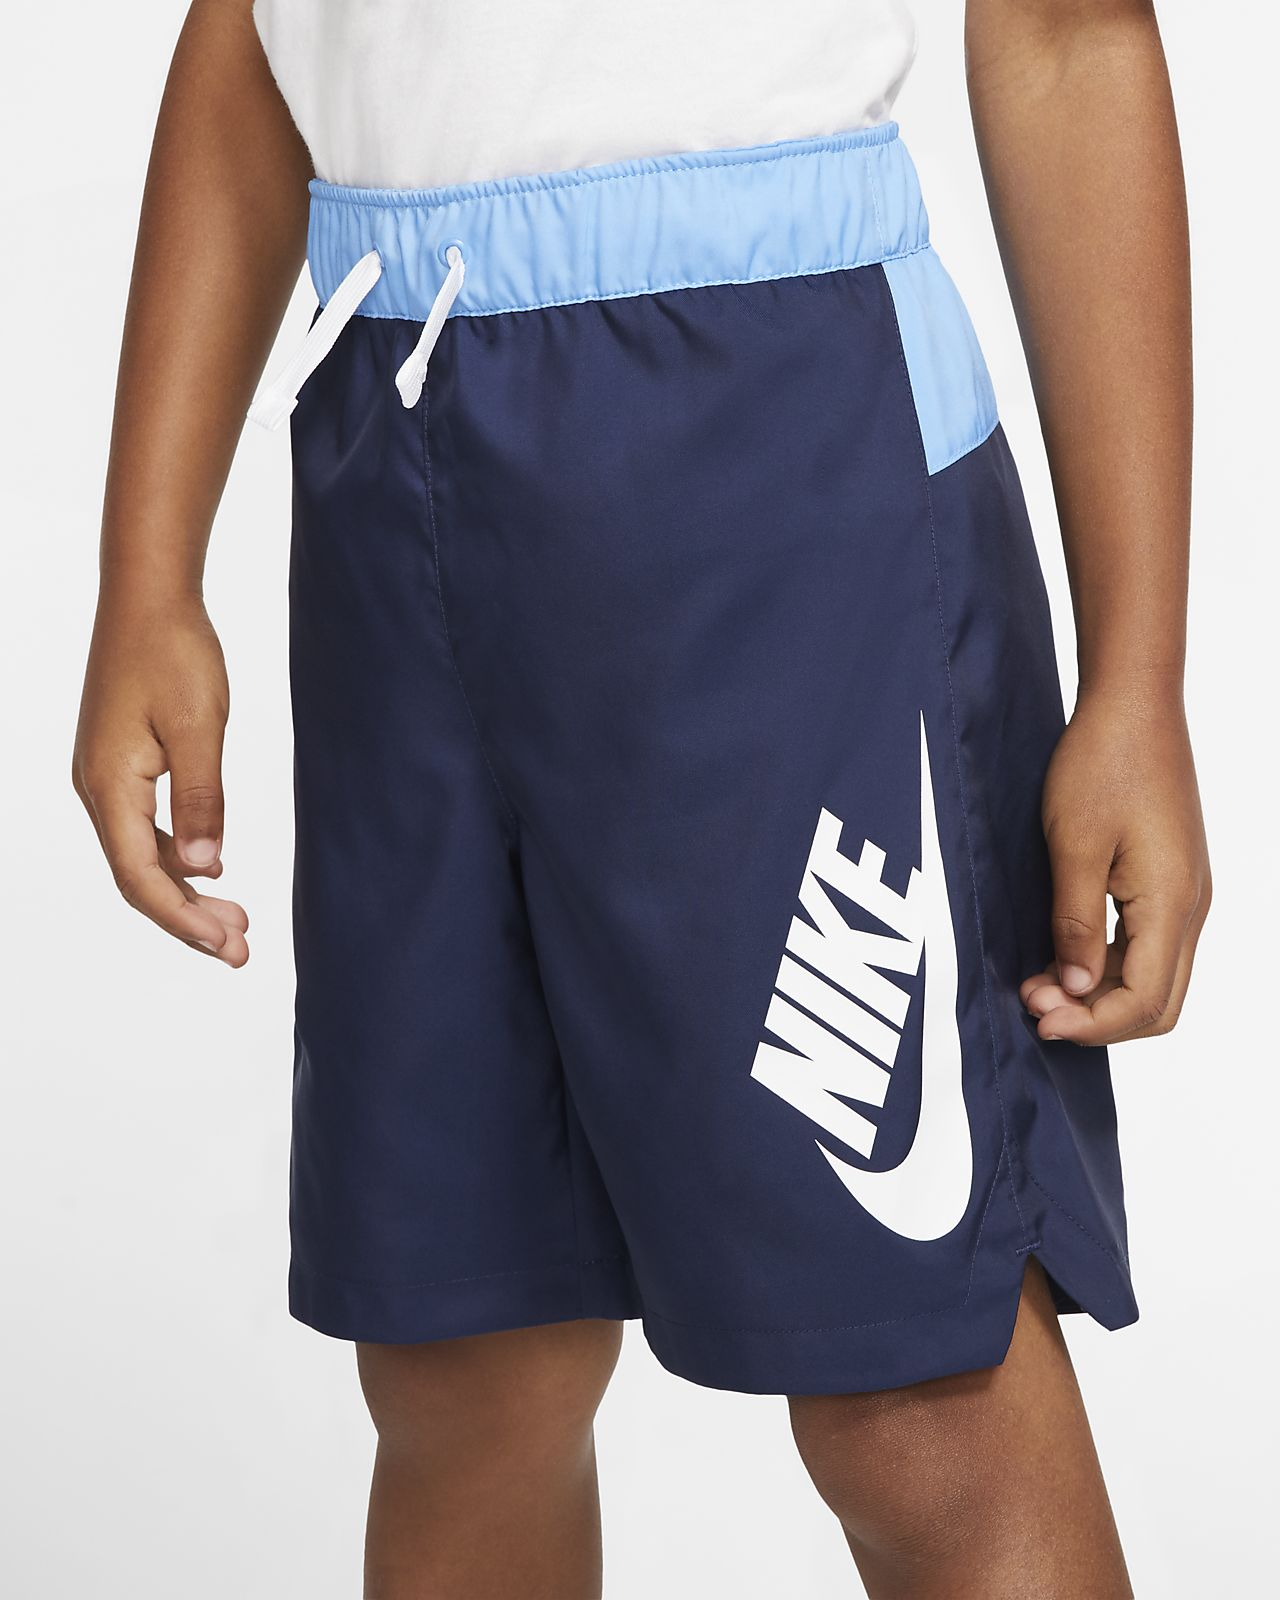 Nike Sportswear Older Kids' (Boys') Woven Shorts